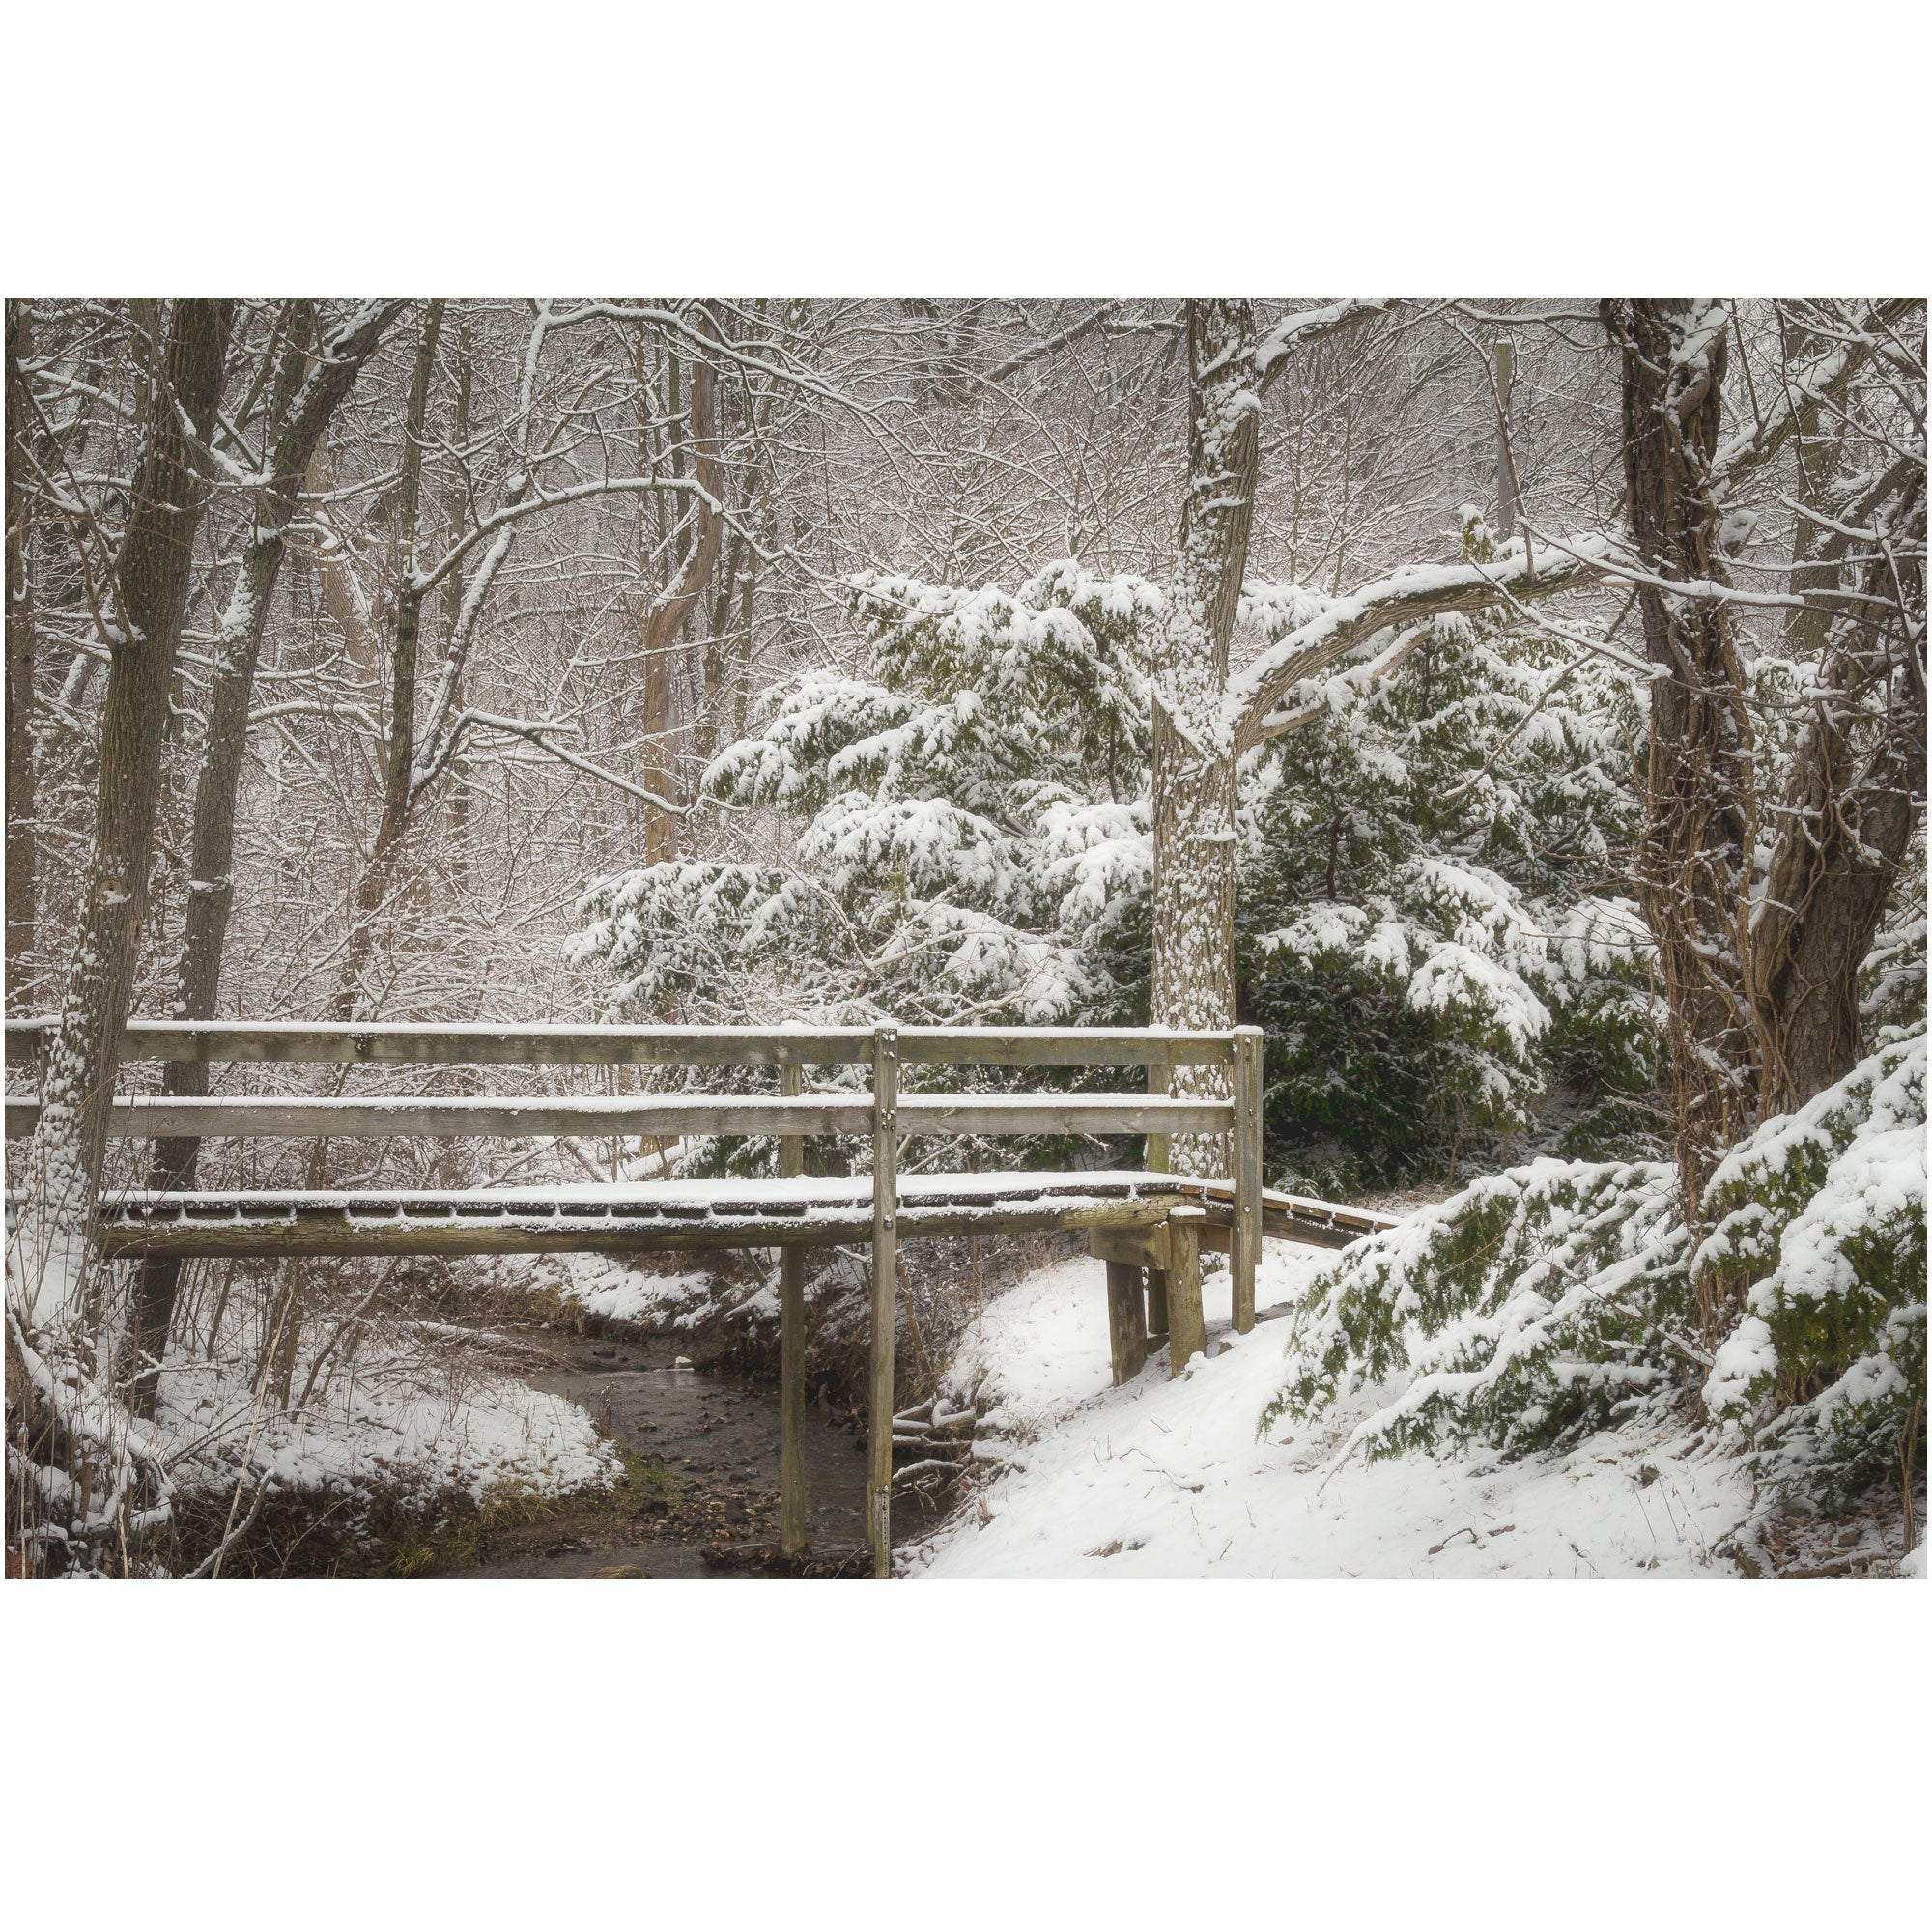 kiser lake footbridge canvas wall art print of a winter scene